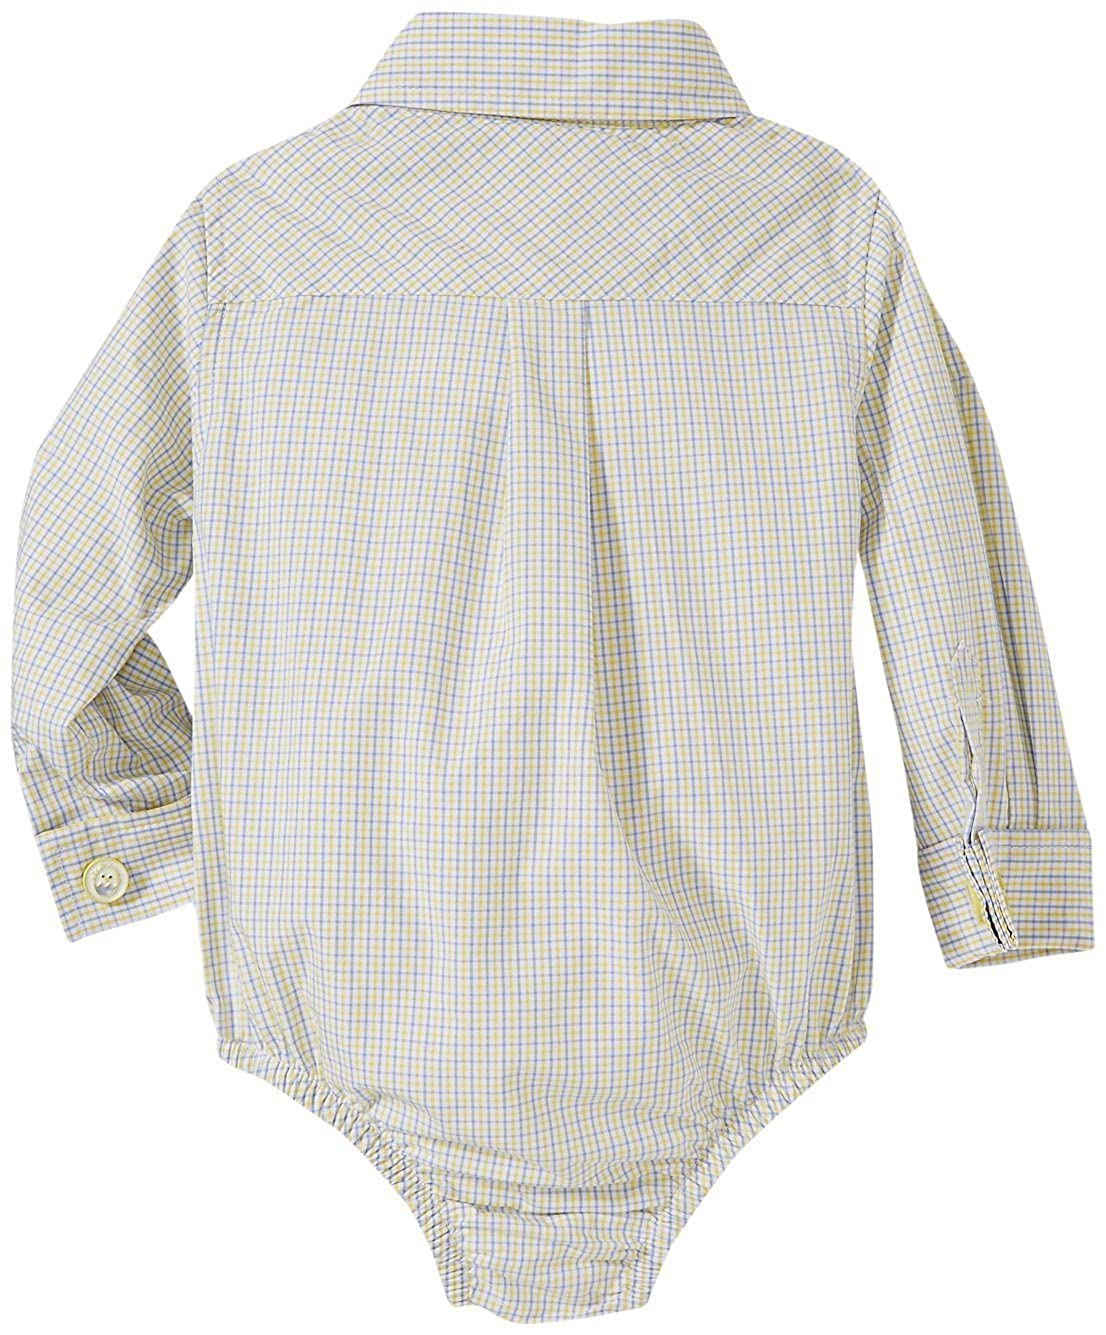 Andy /& Evan Baby Boys Easter Shirtzie Andy /& Evan for little gentlemen 26416A-YWC